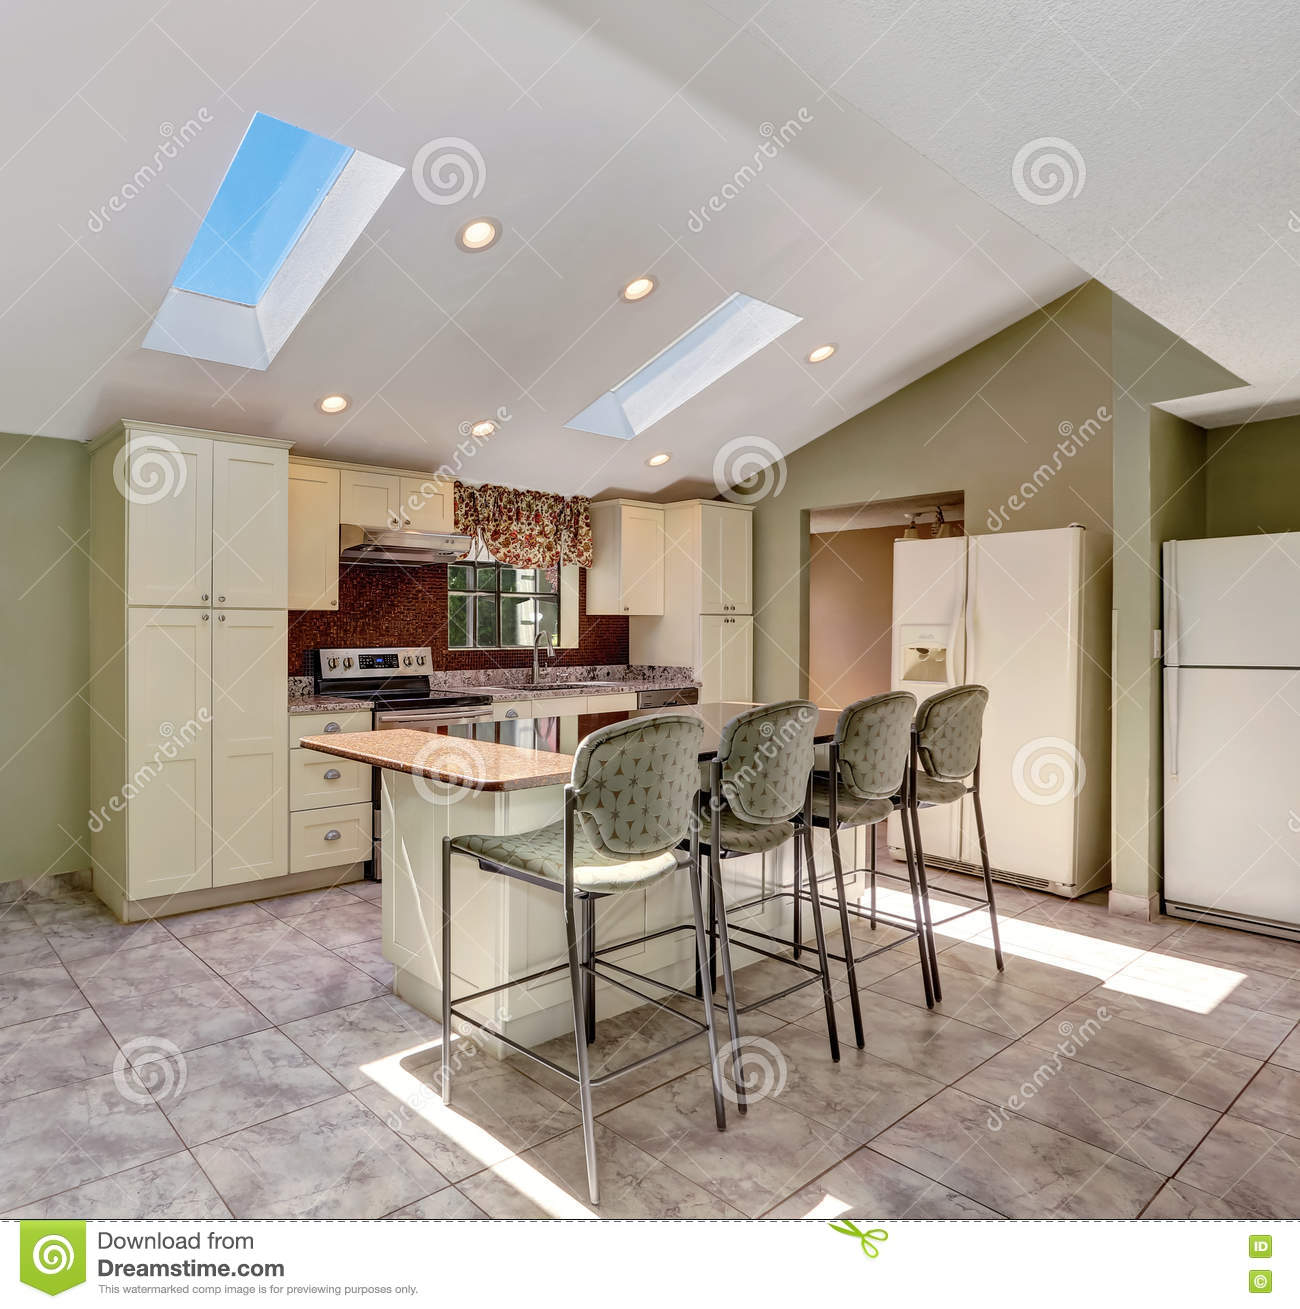 White Kitchen Vaulted Ceiling: Bright Sunny Kitchen With Vaulted Ceiling And Skylights